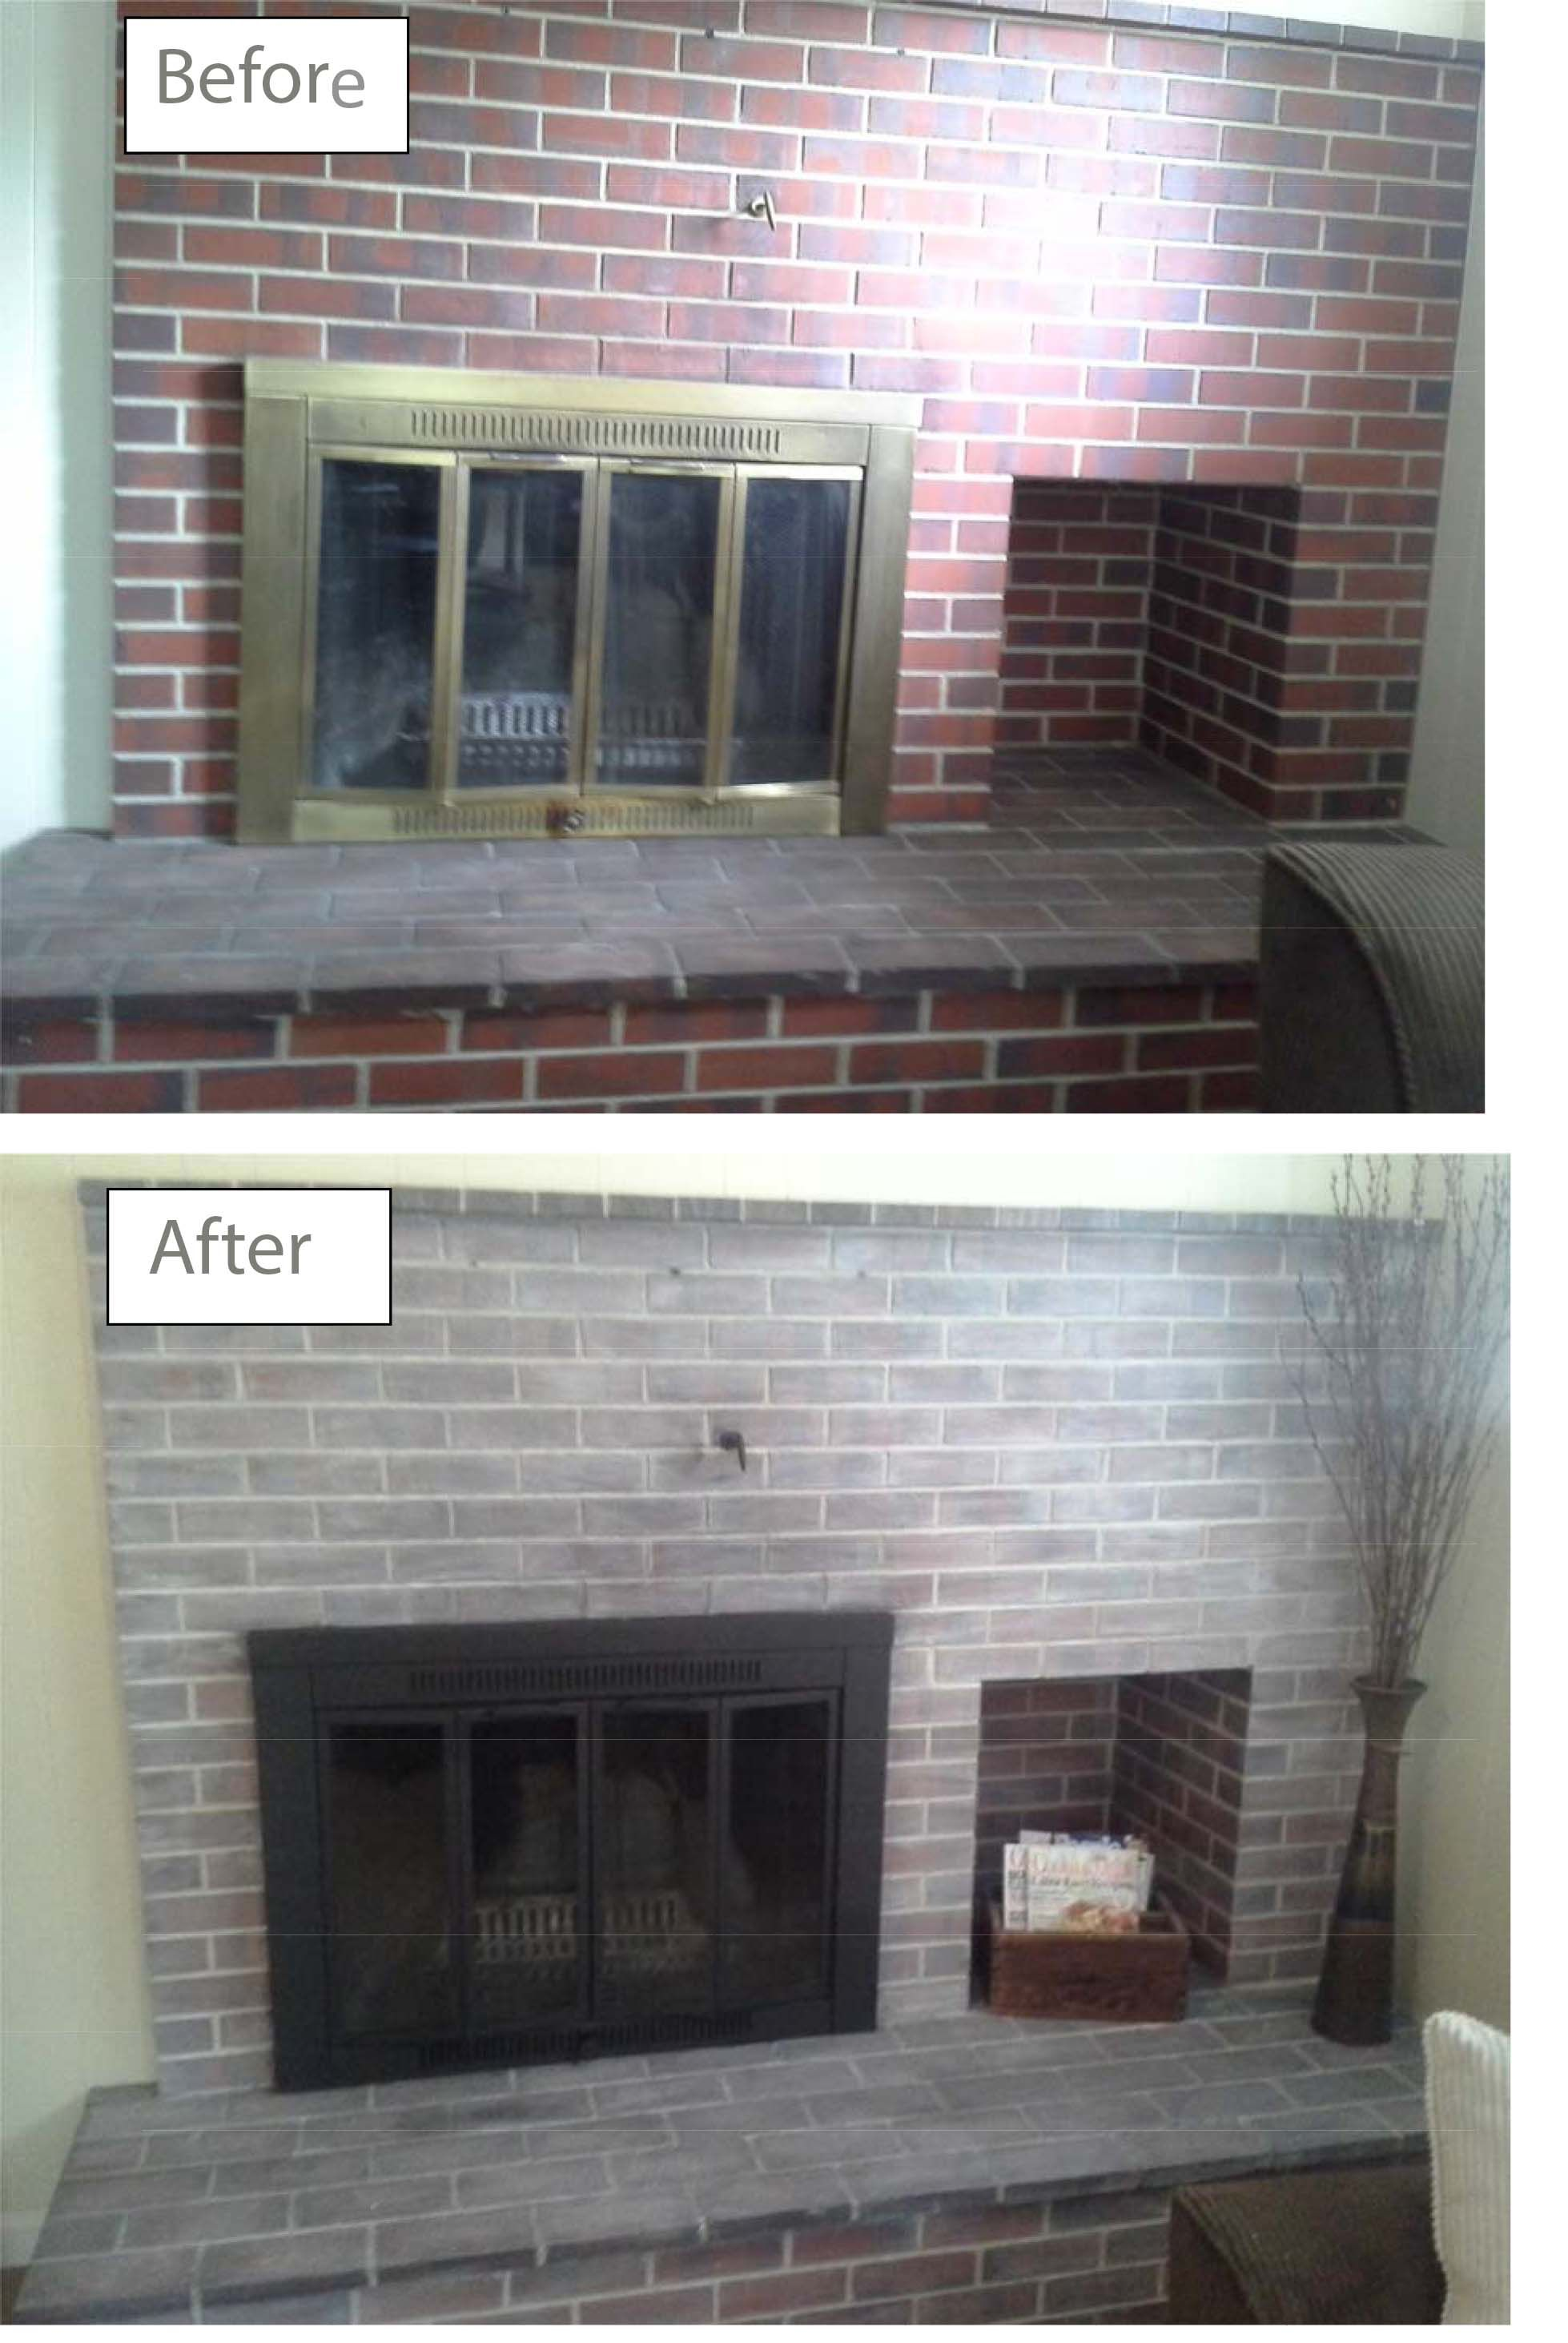 our new house had a lovely retro red brick fireplace with brass